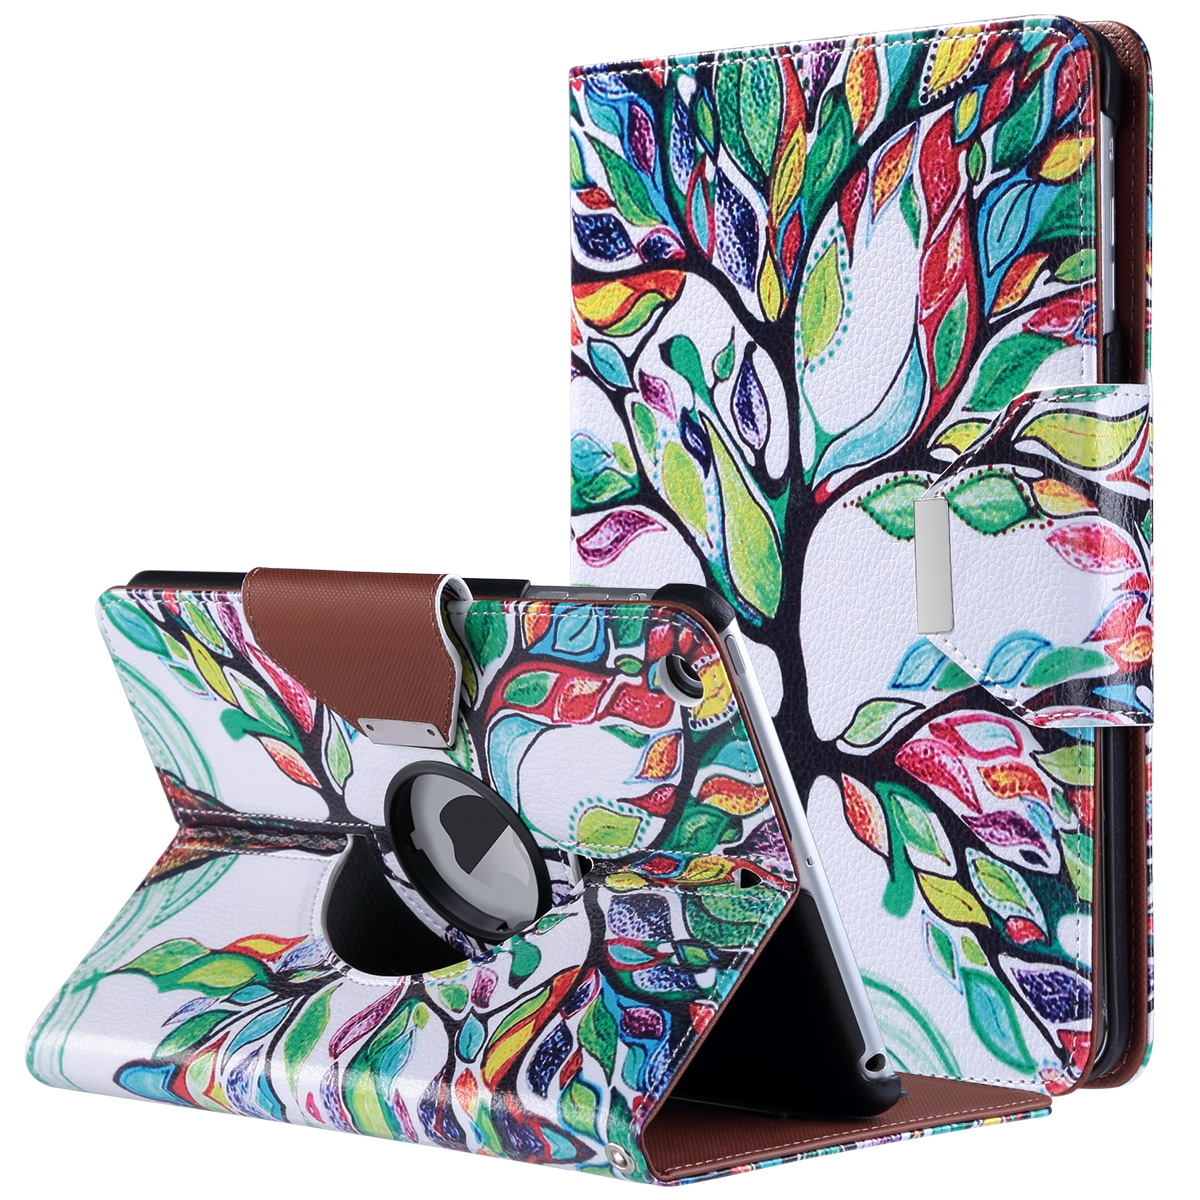 iPad mini 2 Case / iPad mini 3 / iPad mini Rotating Case - ULAK Multi-Angle Stand Smart Cover with Auto Sleep/Wake for Apple iPad mini 1/2/3